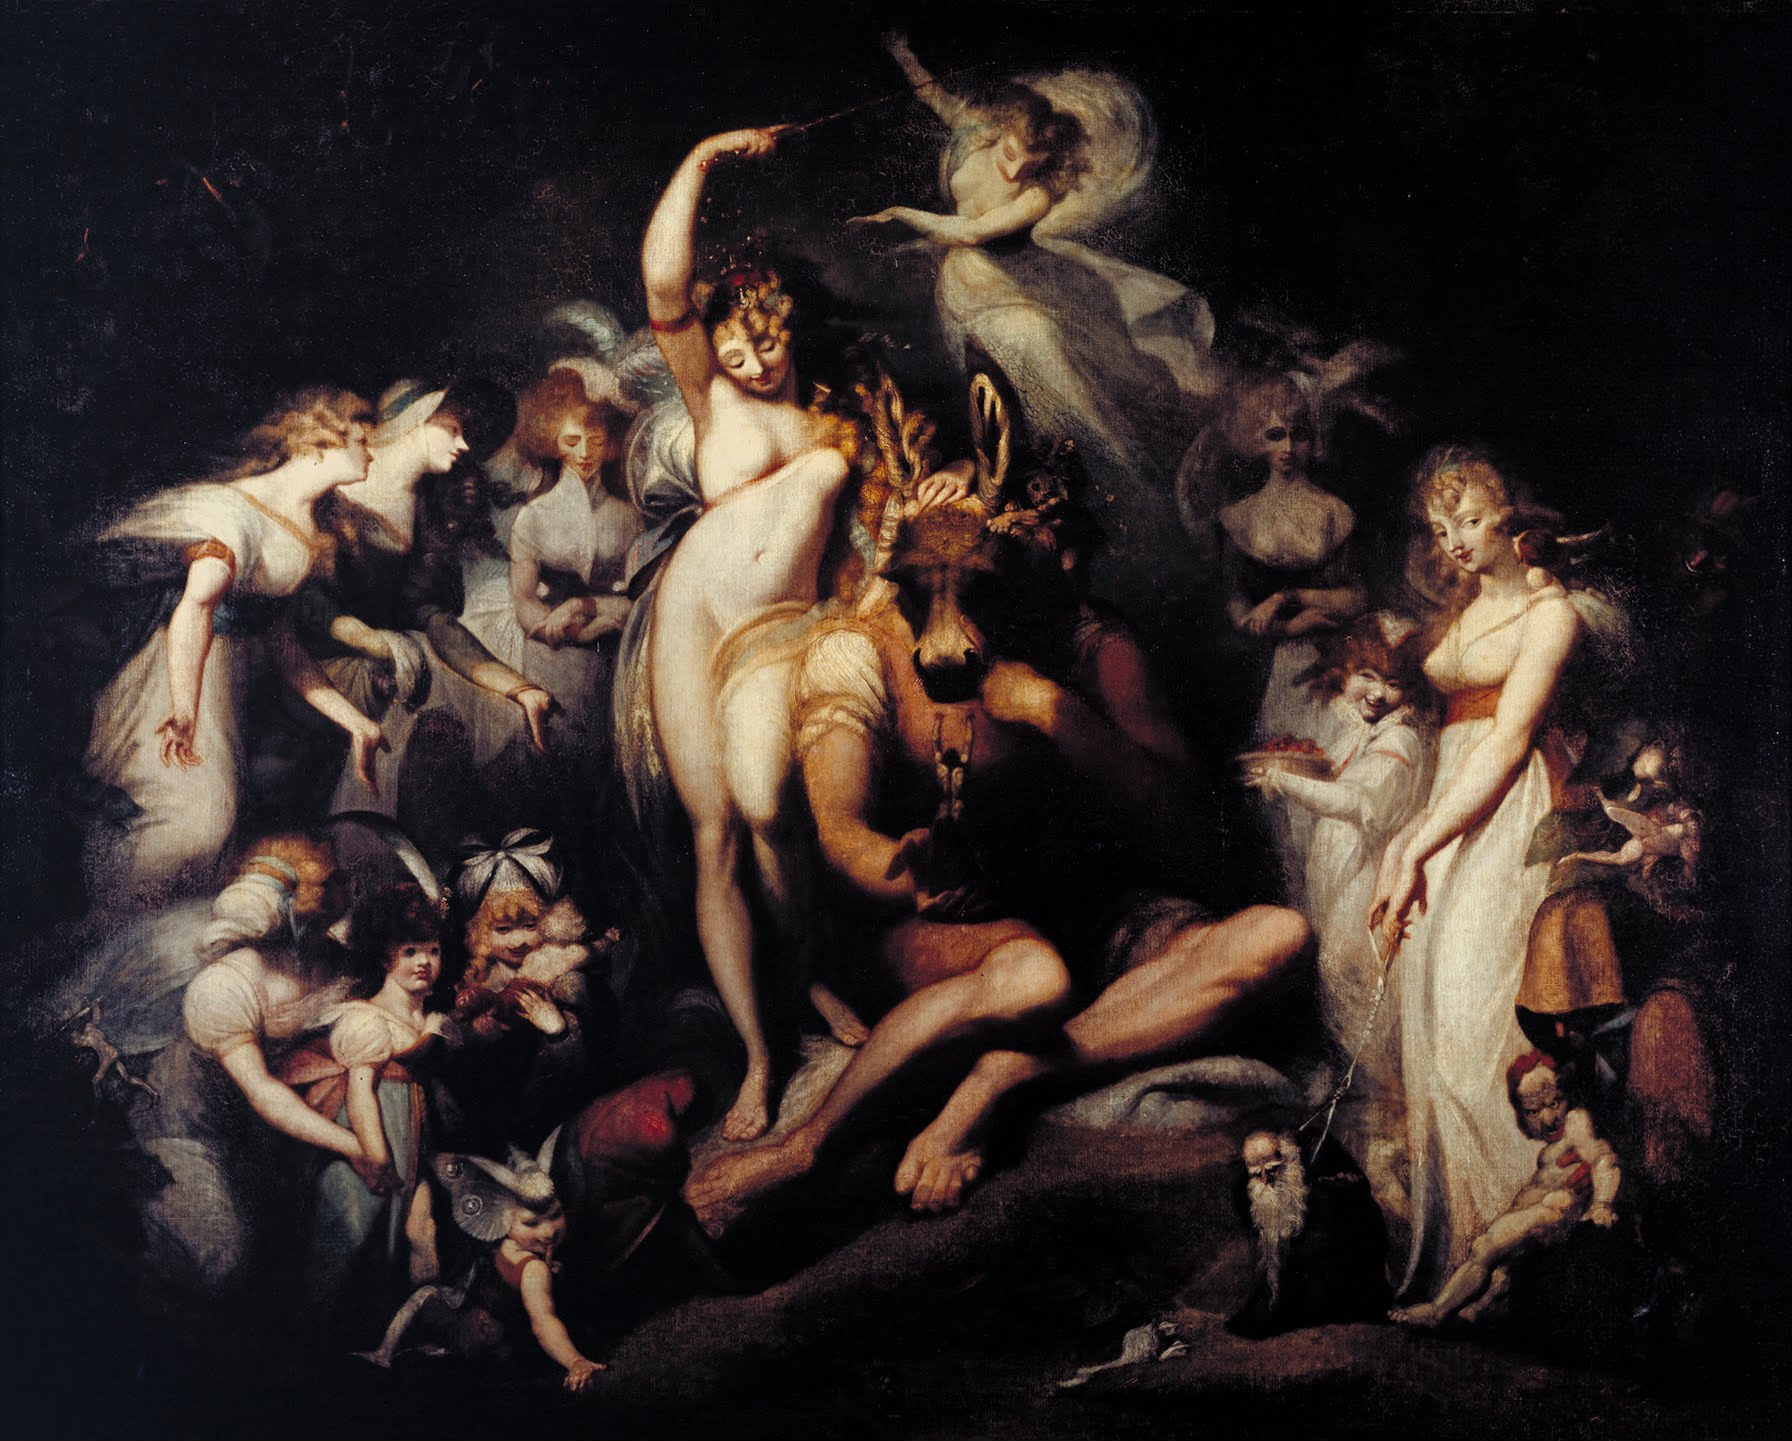 Henry_Fuseli_-_Titania_and_Bottom_-_Google_Art_Project